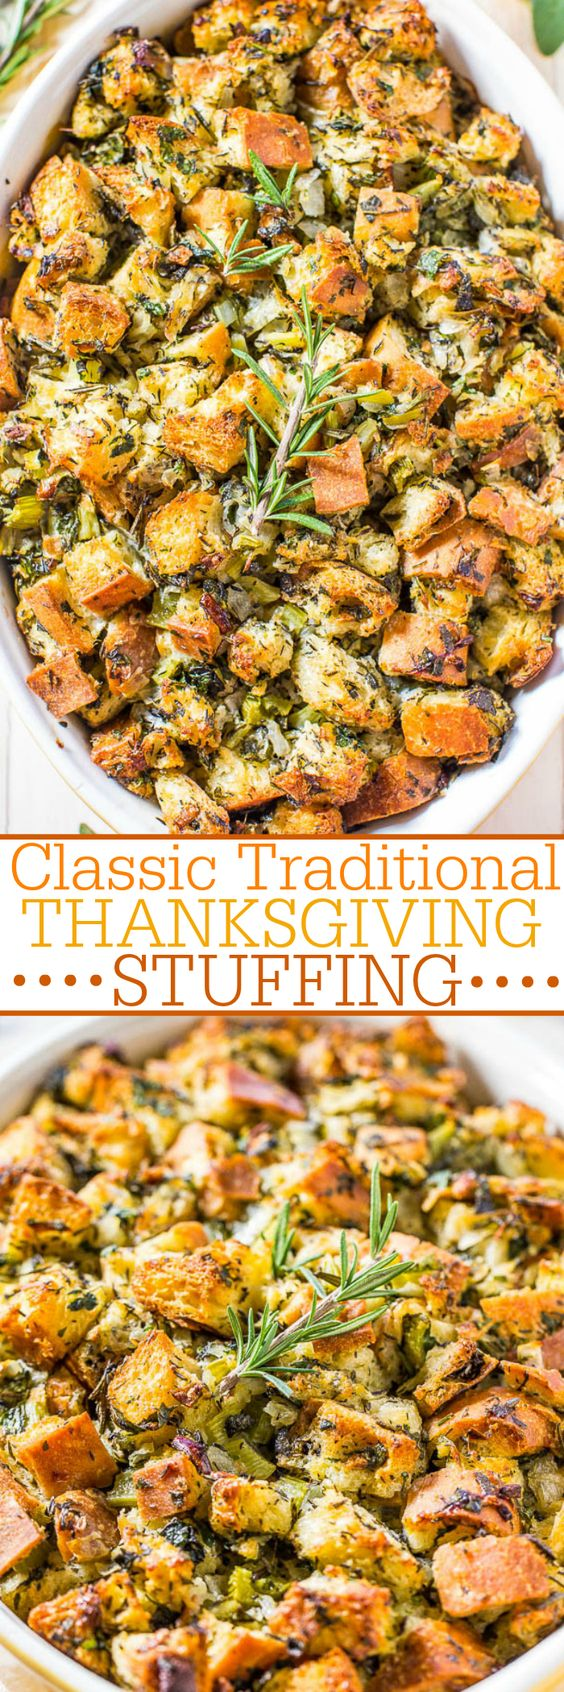 Classic Traditional Thanksgiving Stuffing Recipe | Averie Cooks - The BEST Classic, Improved and Traditional Thanksgiving Dinner Menu Favorites Recipes - Main Dishes, Side Dishes, Appetizers, Salads, Yummy Desserts and more!